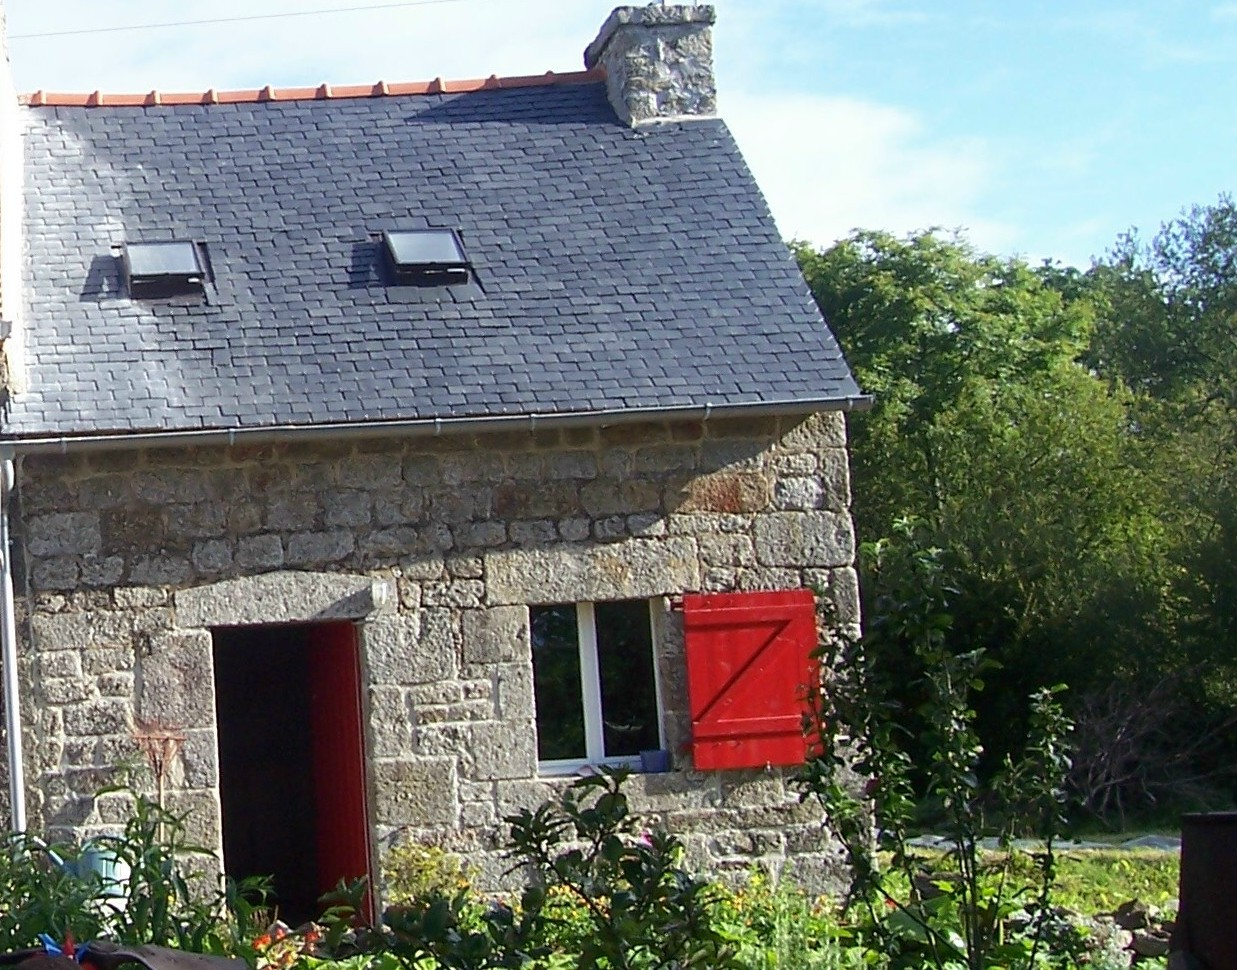 Brittany property for sale english speaking agents in for Achat maison a restaurer